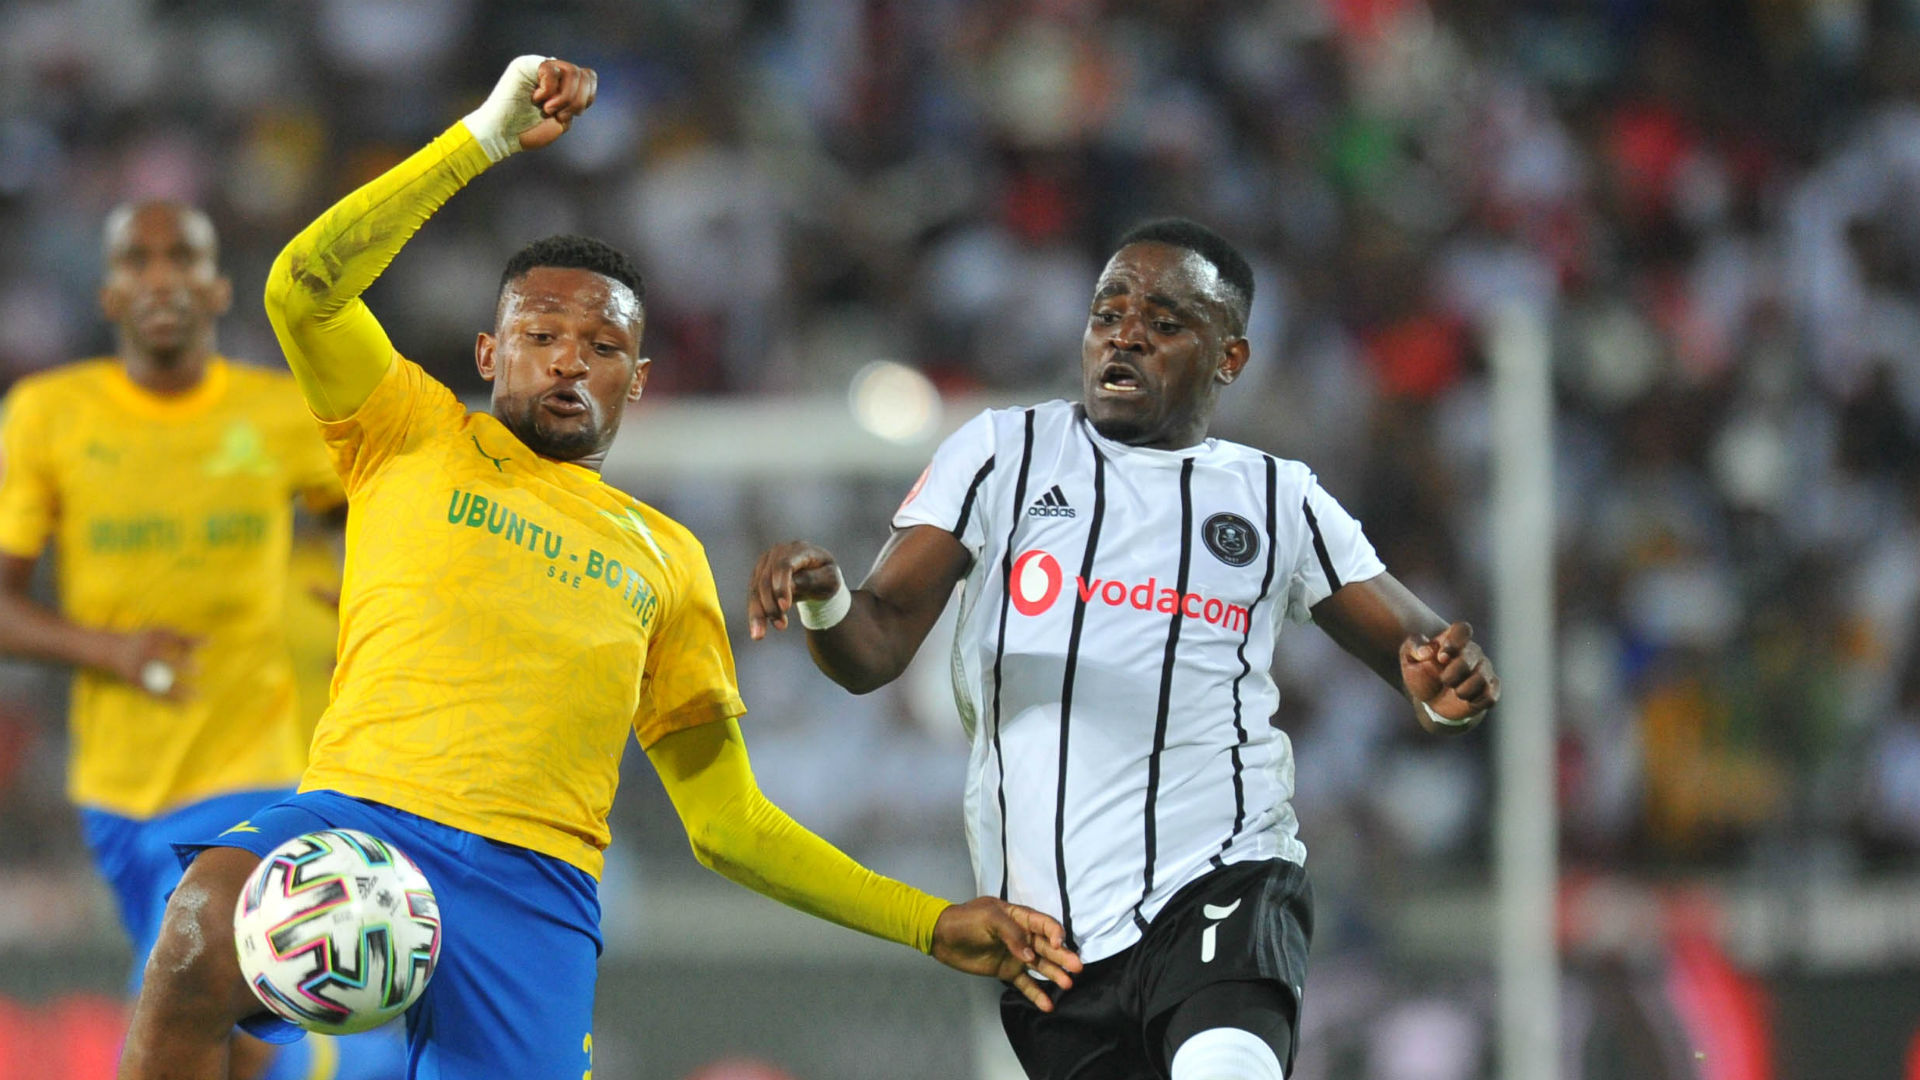 Mamelodi Sundowns vs Orlando Pirates: Five players who could light up the match